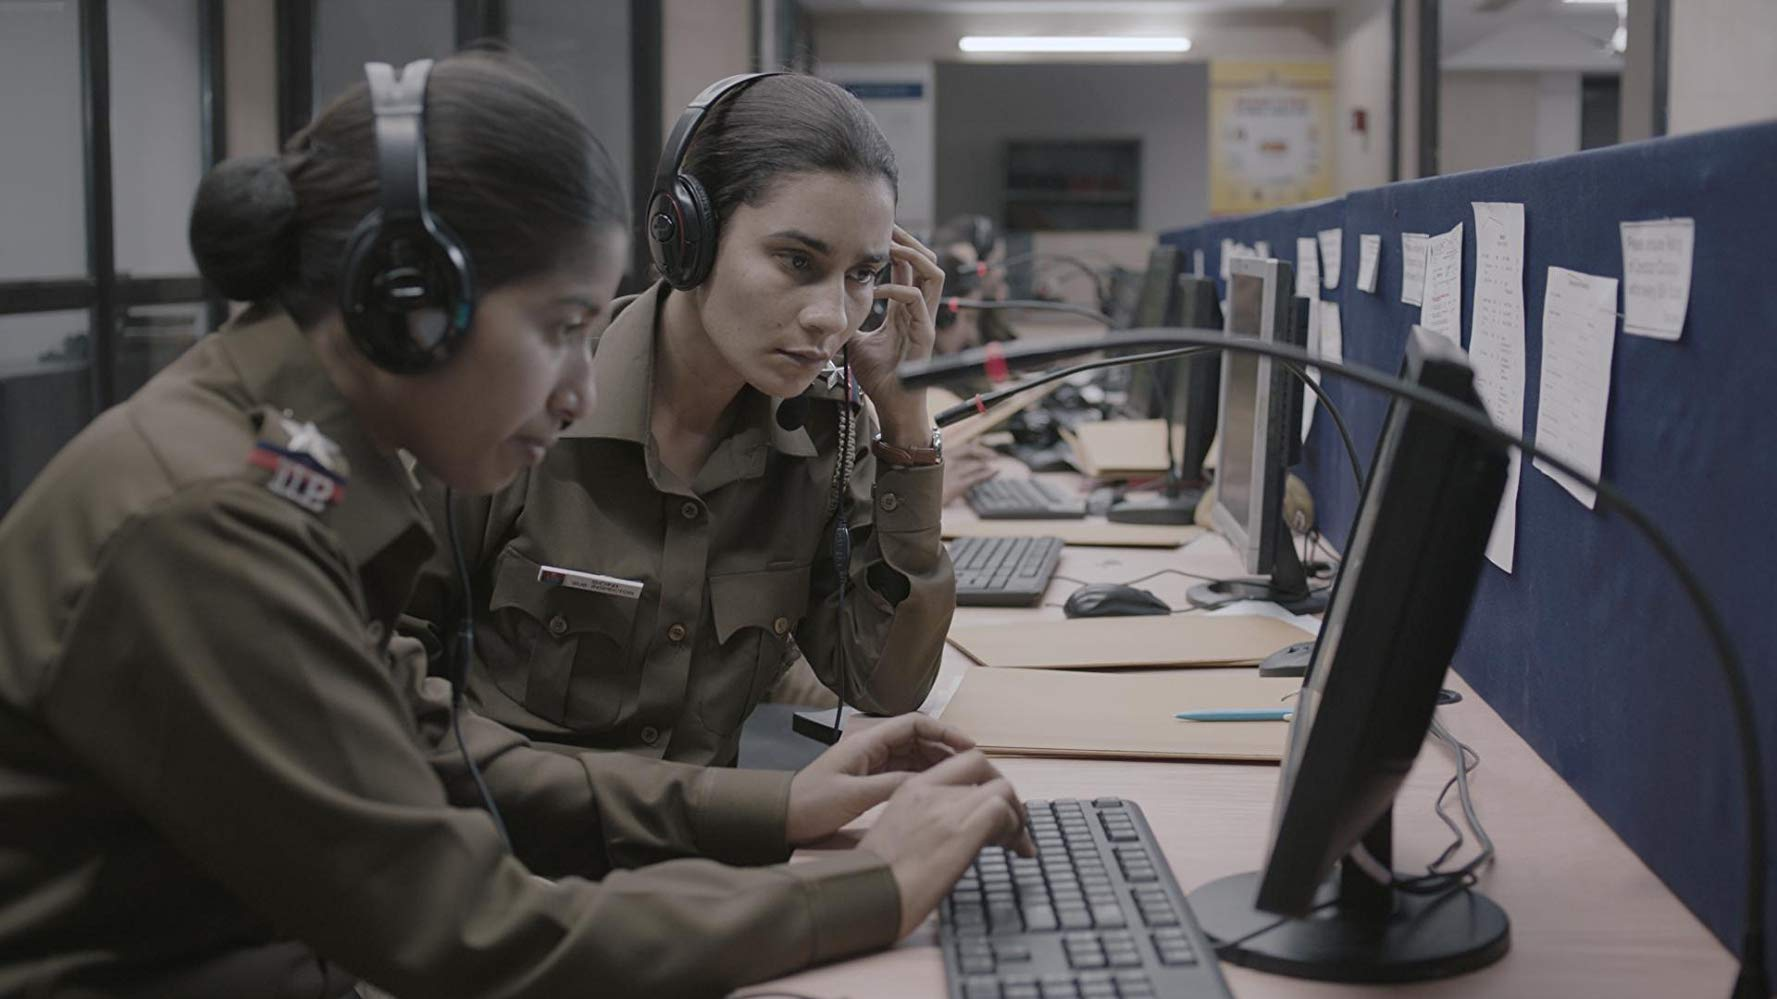 123movies - Soni (2018) [Sub: Eng] Watch here for free